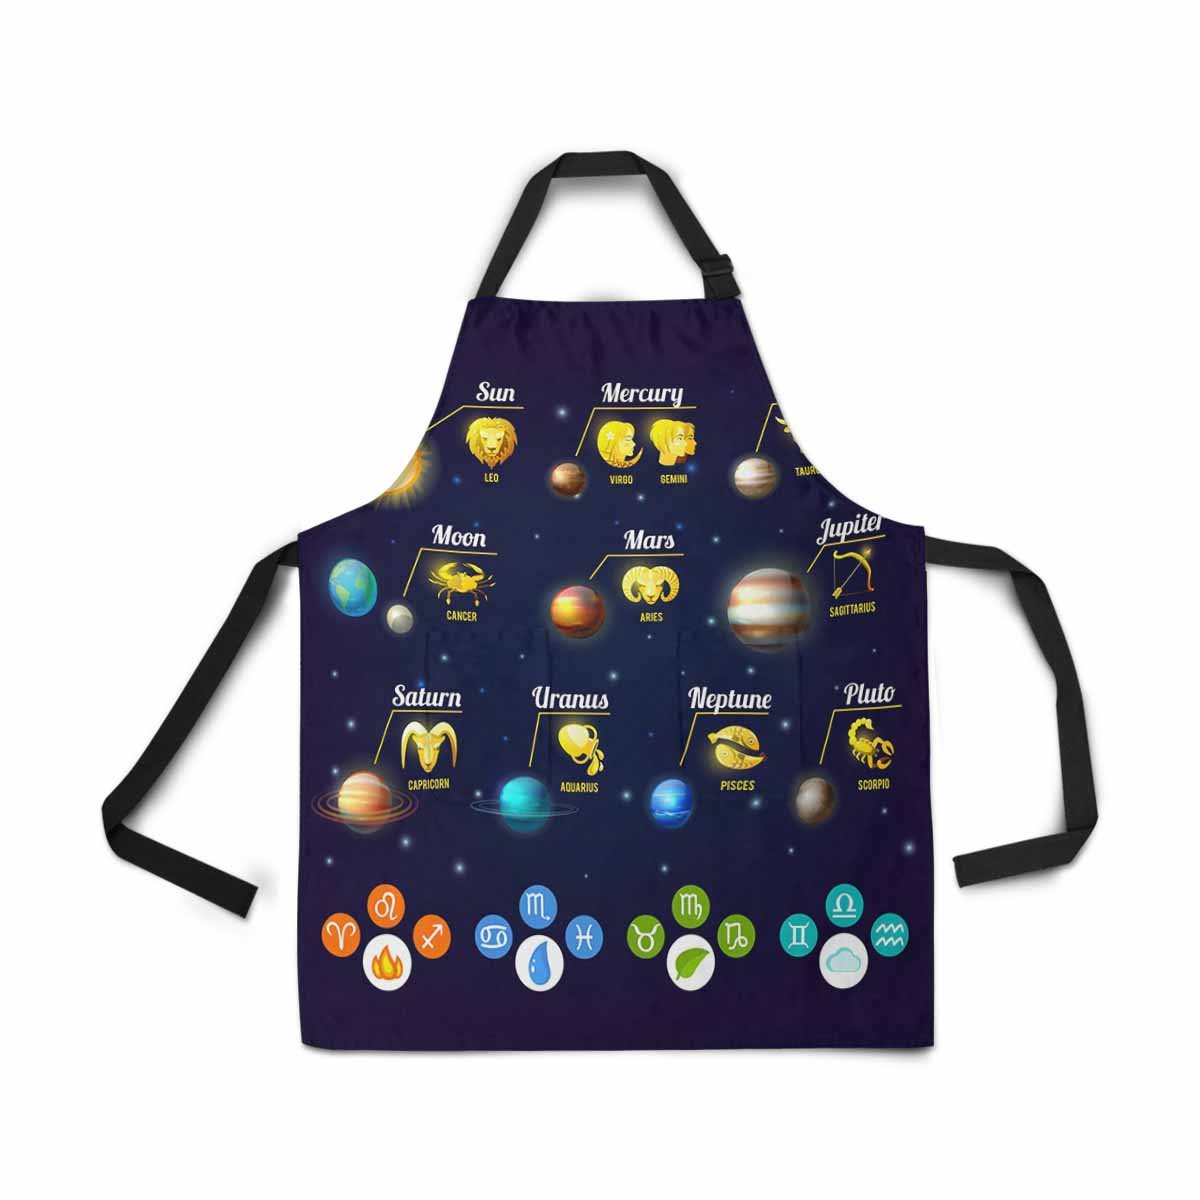 InterestPrint Adjustable Bib Apron for Women Men Girls Chef with Pockets, Zodiac Solar System Sun Earth Novelty Kitchen Apron for Cooking Baking Gardening Pet Grooming Cleaning